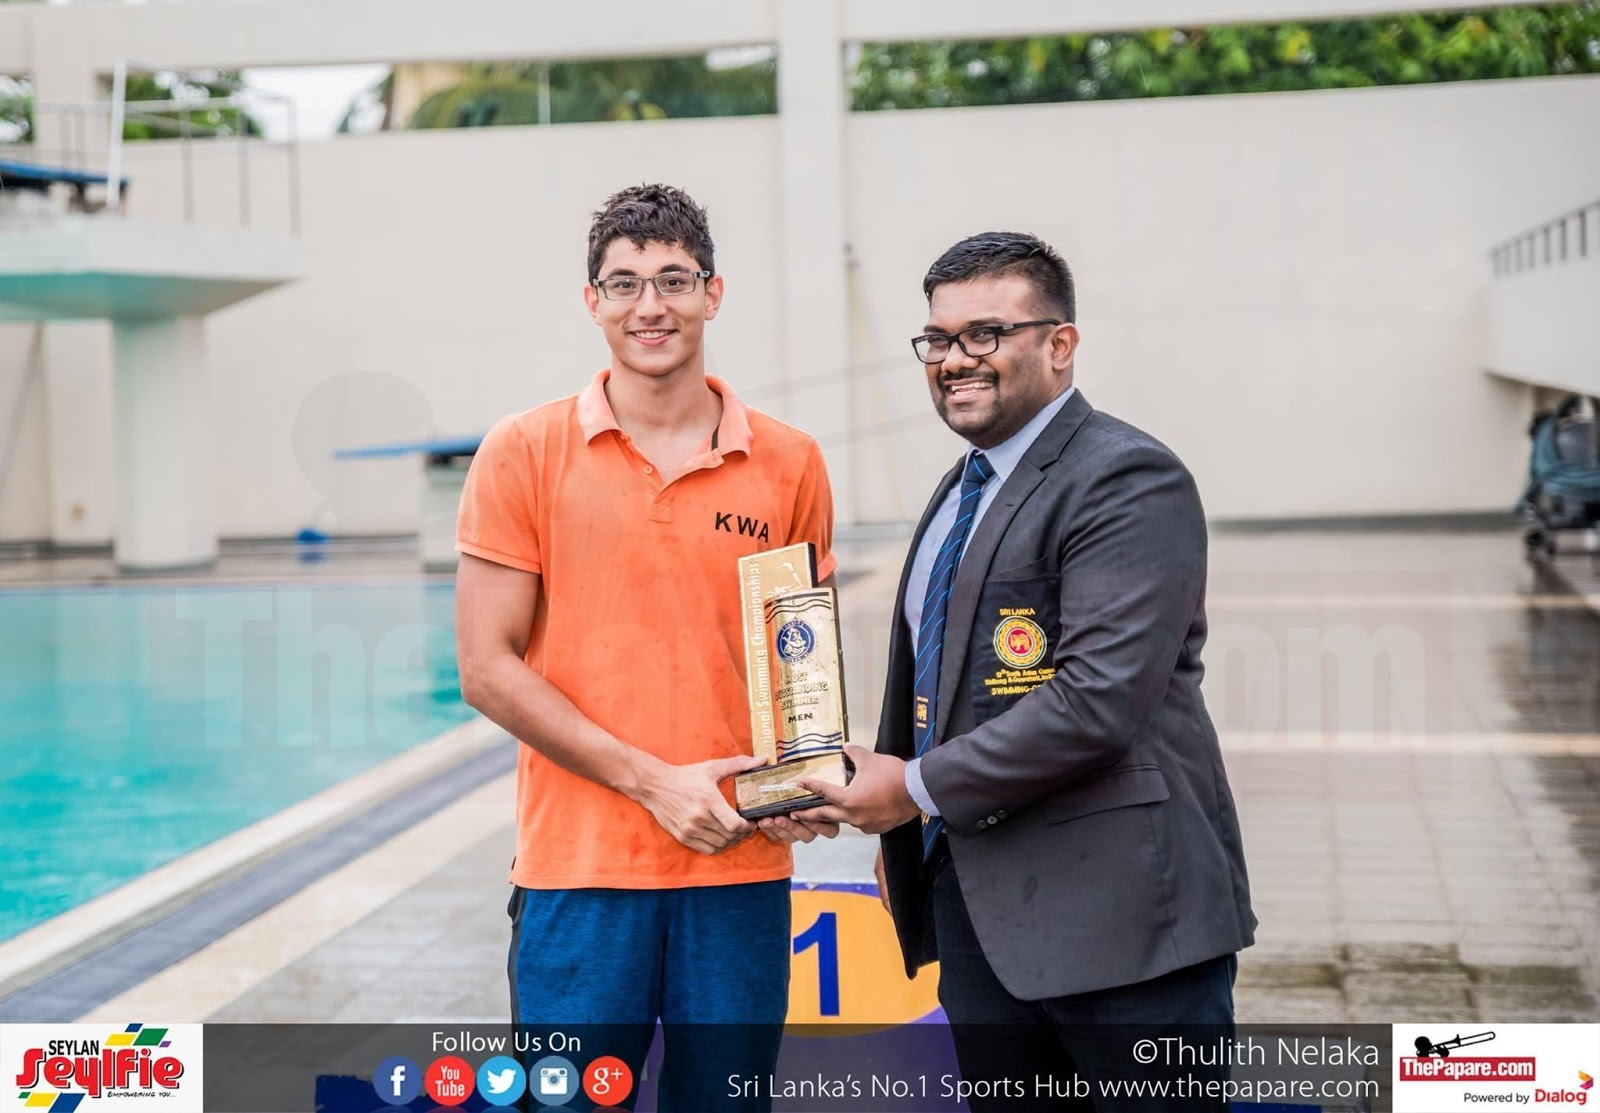 Kyle Abeysinghe getting his Best Swimmer award from Secretary SLASU Migara Gunathilake (R)